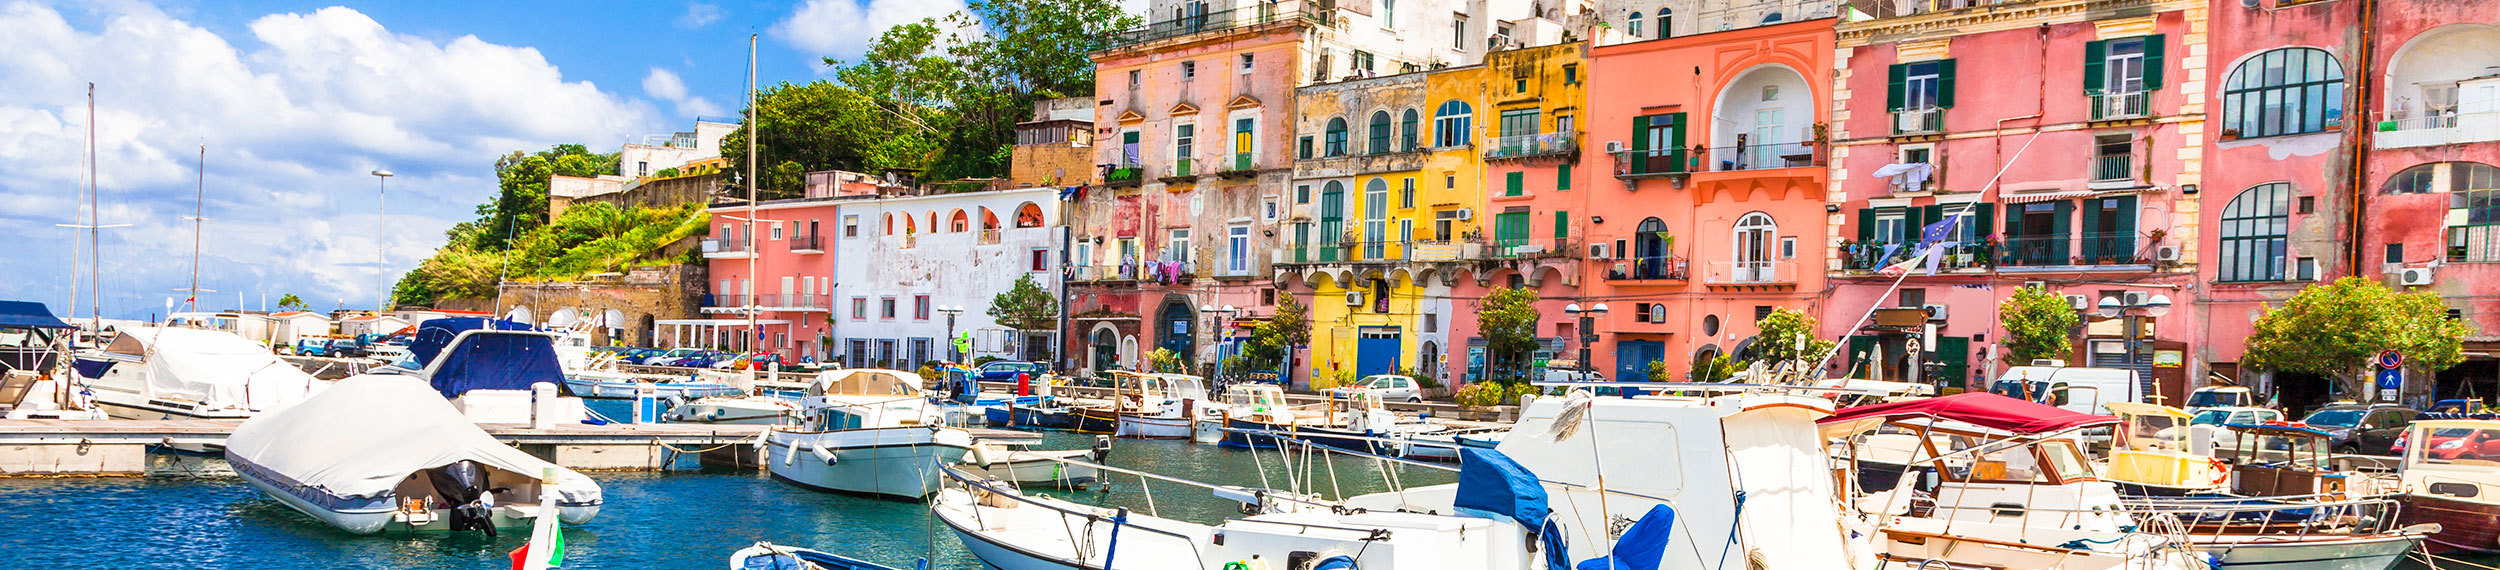 Blue and white boats sit in the aqua colored harbor with bright and colorful homes in Procida Island, Campania, Italy.